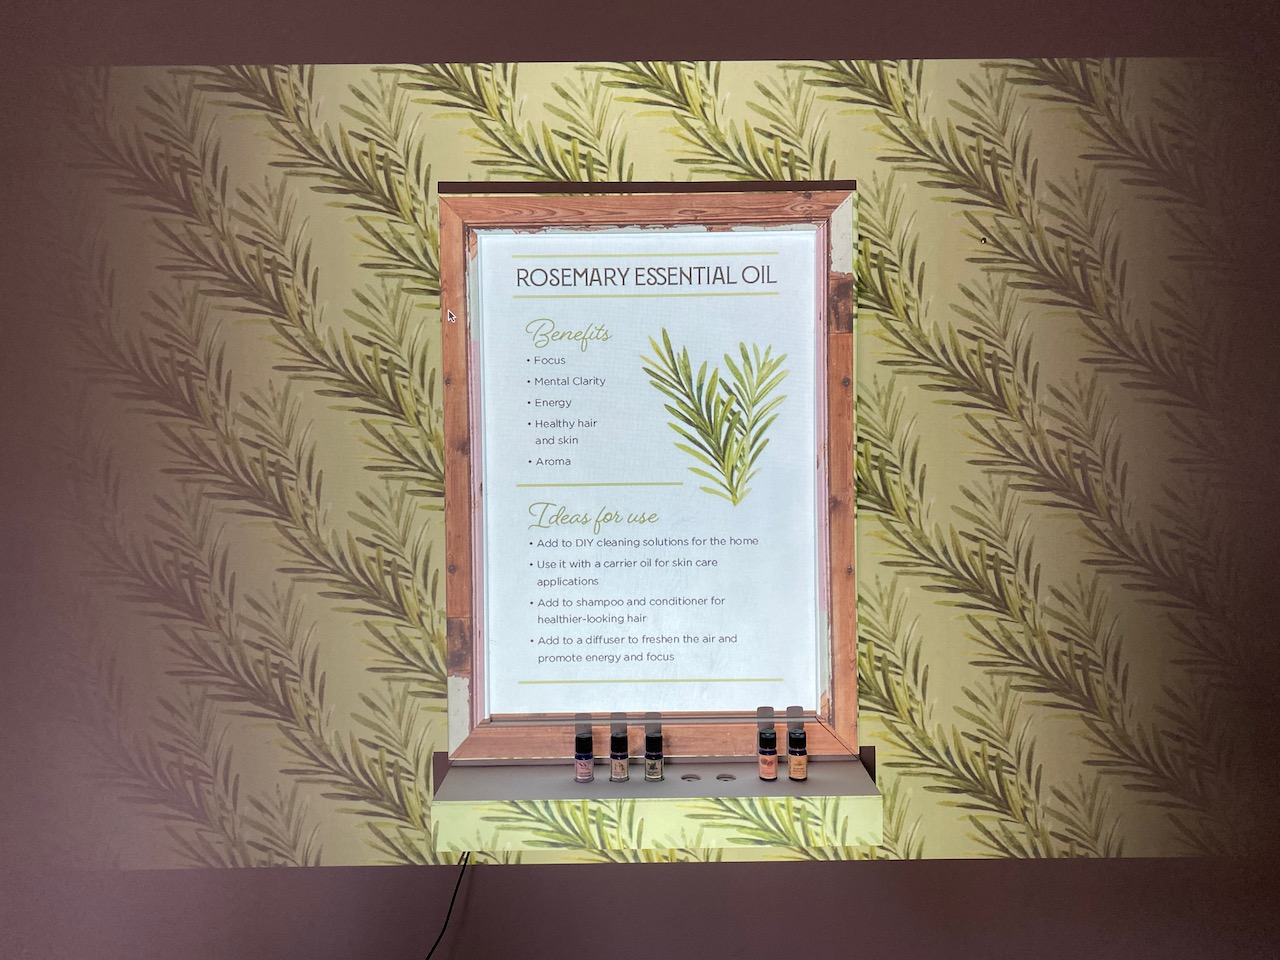 Rosemary Essential Oil display